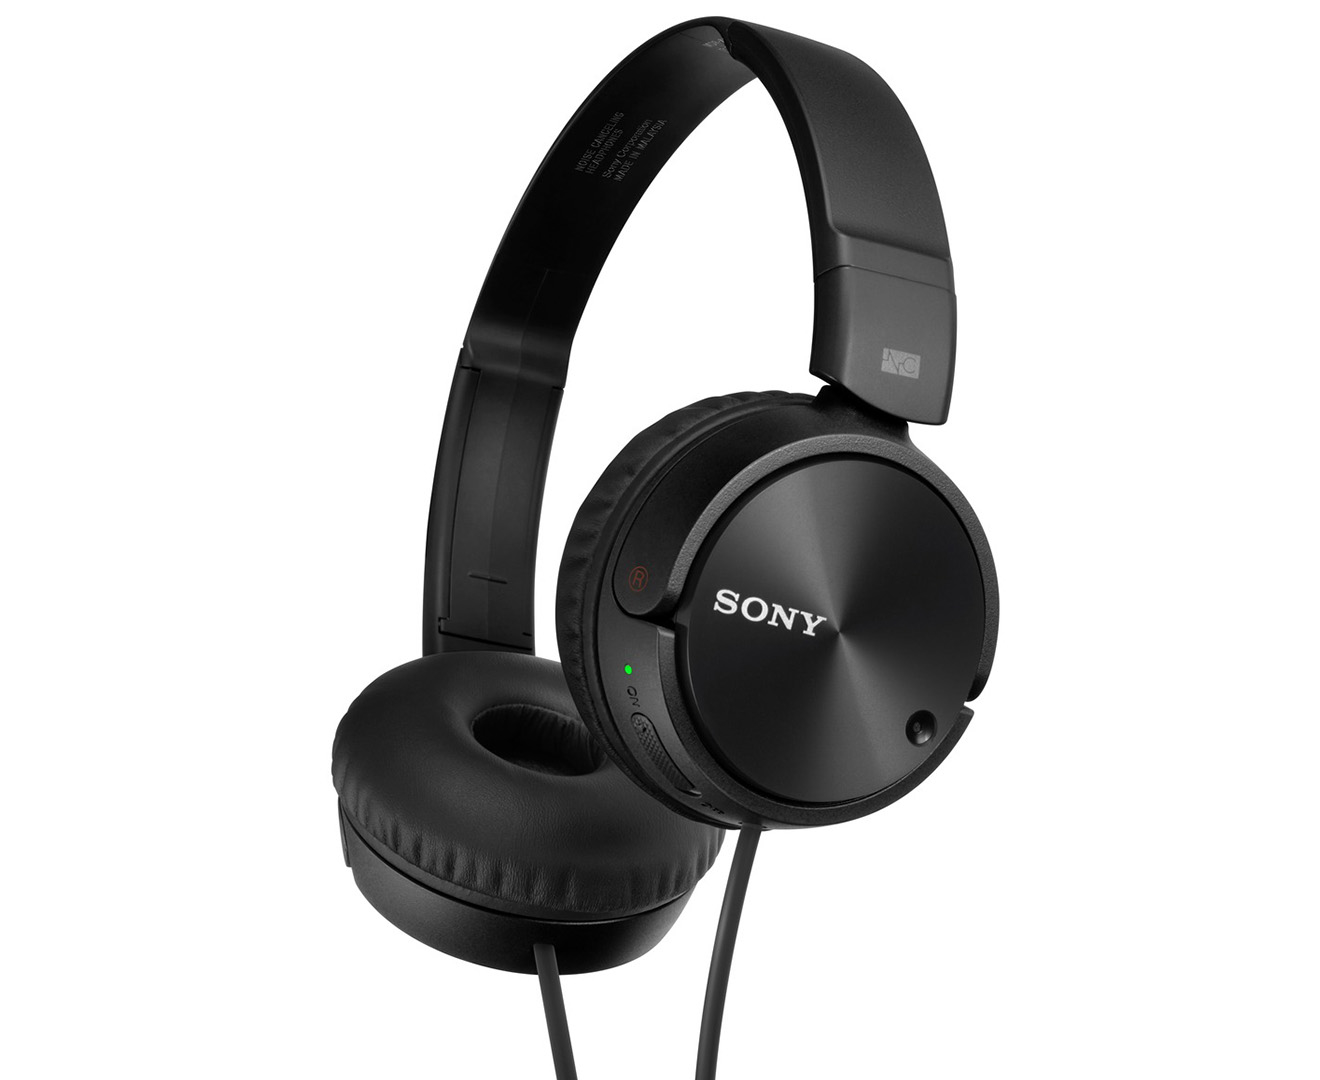 50 Gifts for Men | Sony Noise Cancelling Headphones | Beanstalk Mums